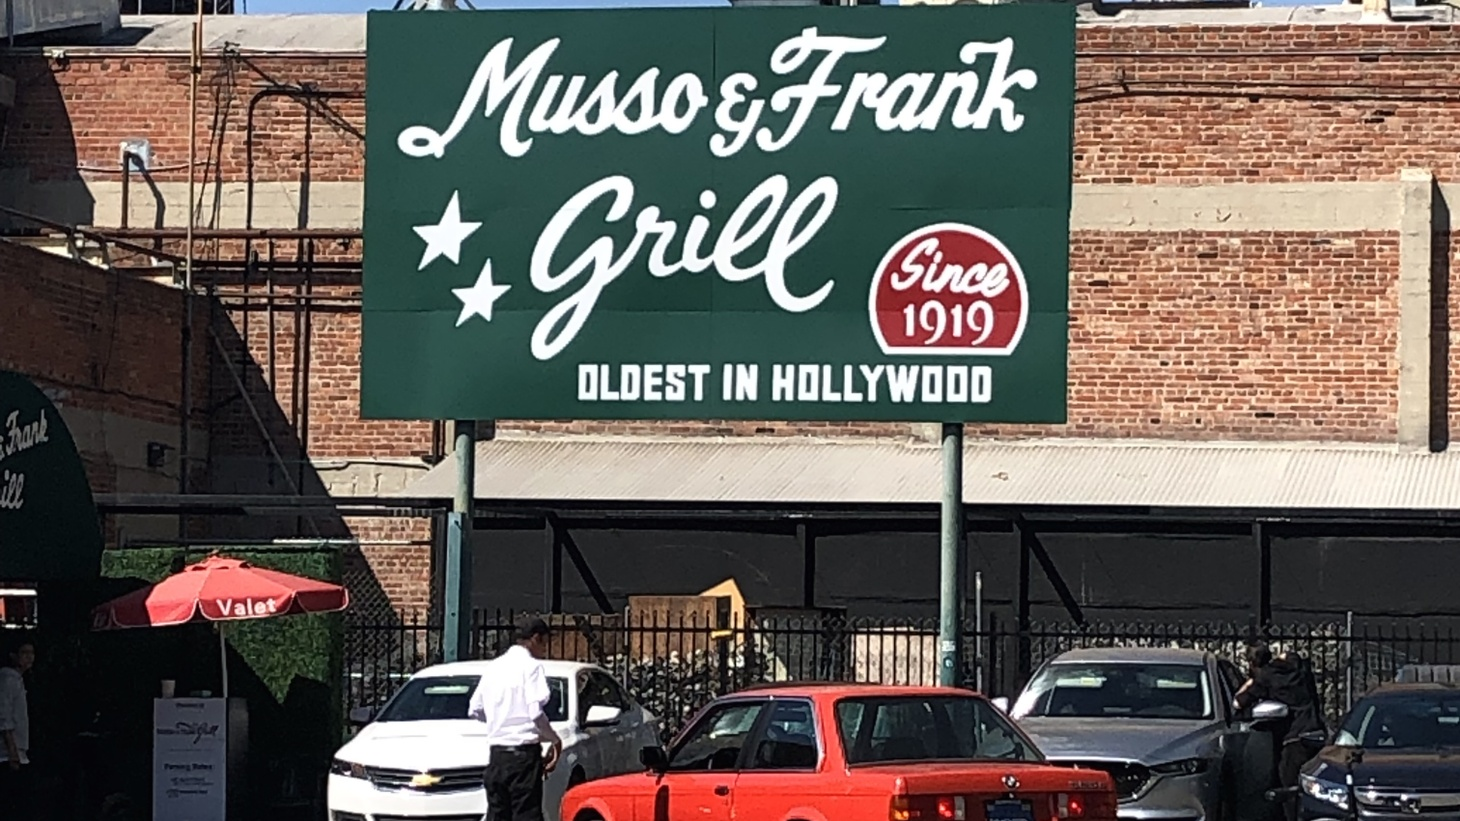 The exterior of Musso & Frank Grill.